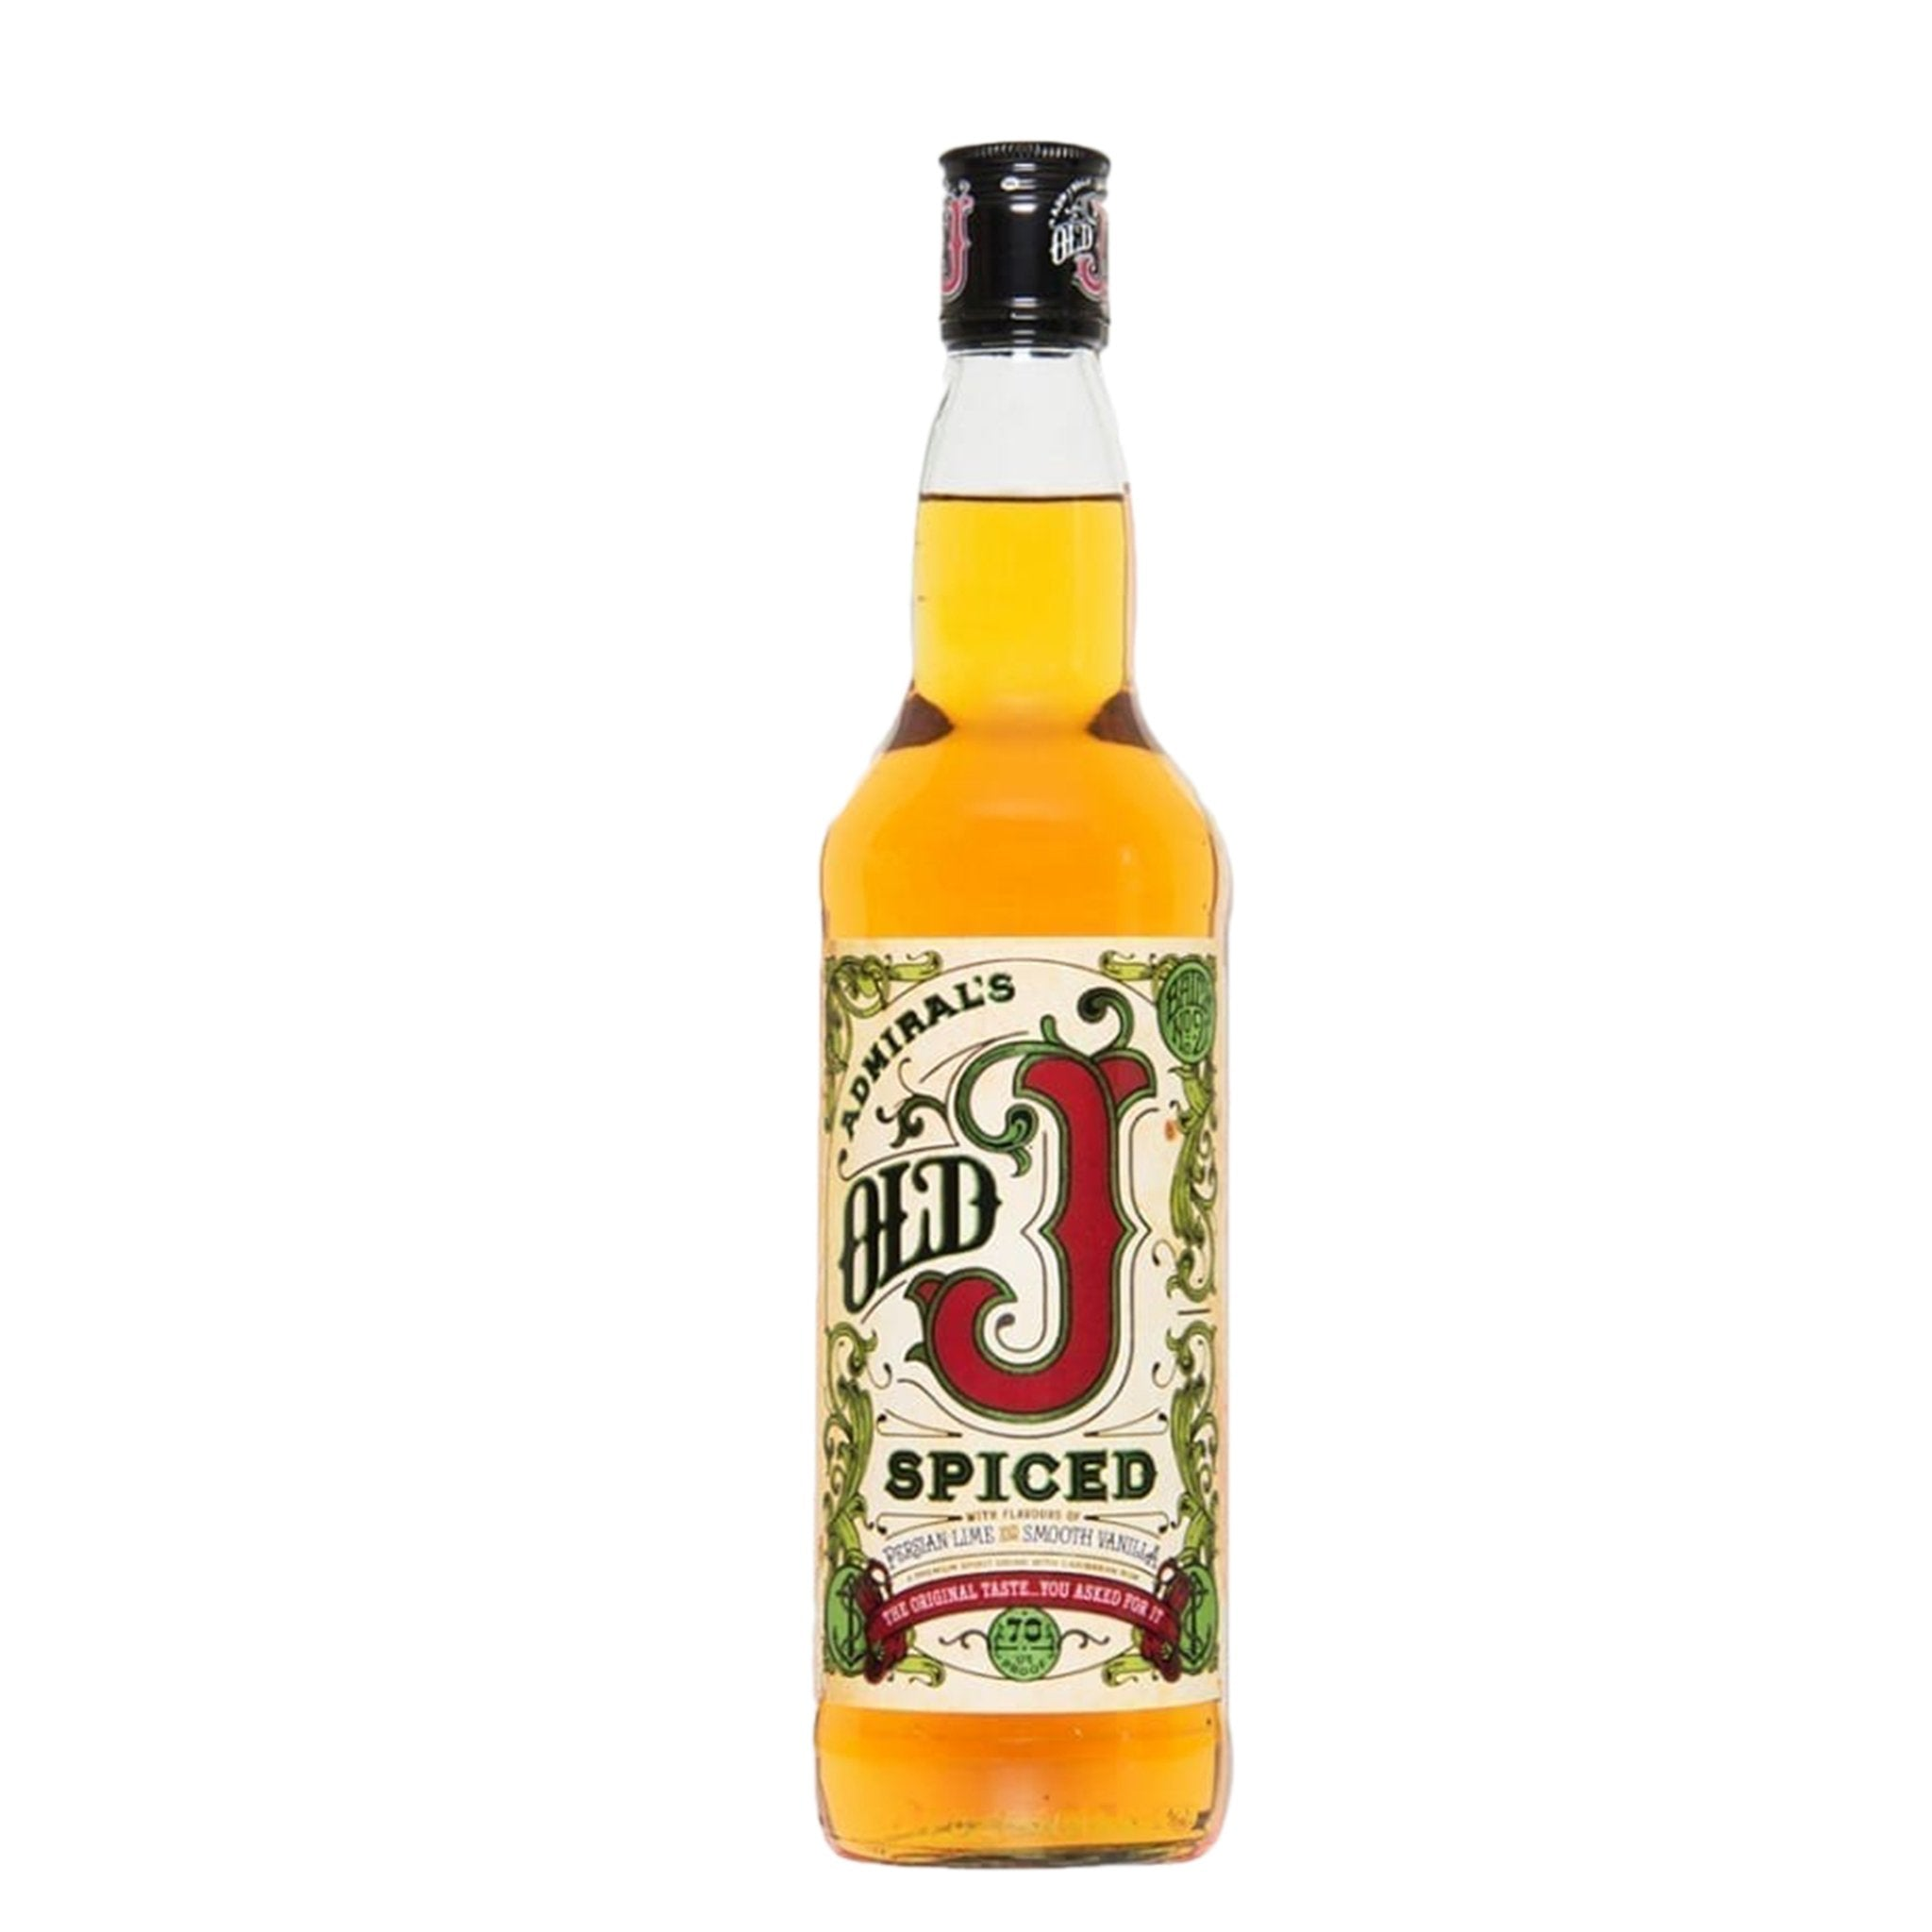 Admirals Old J Spiced 70cl, Rum - Image 0